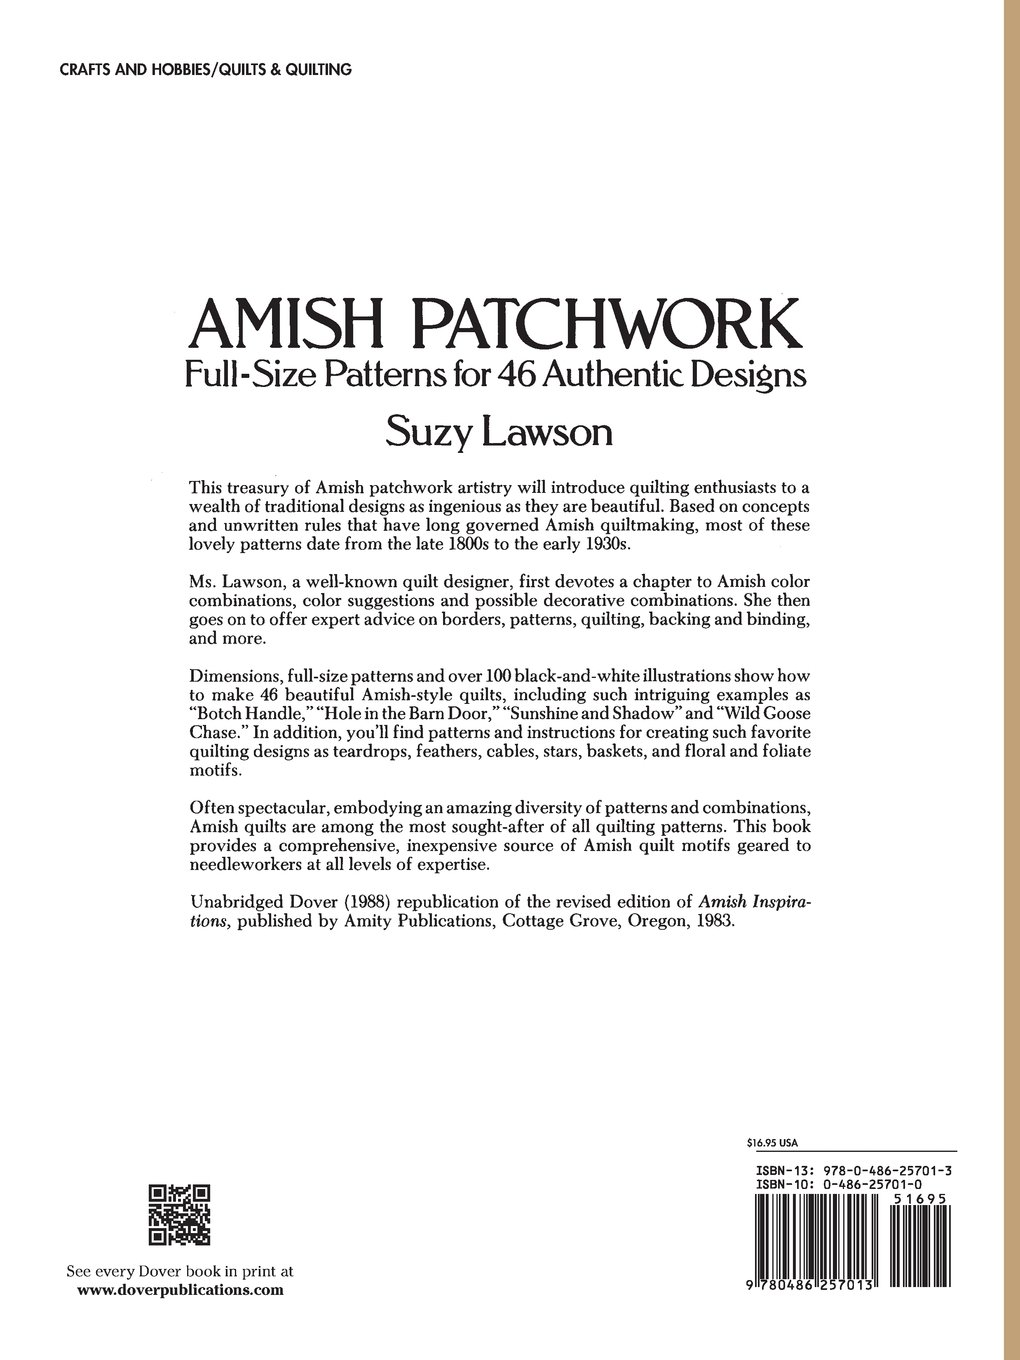 amish patchwork full size patterns for authentic designs amish patchwork full size patterns for 46 authentic designs dover quilting suzy lawson 9780486257013 com books